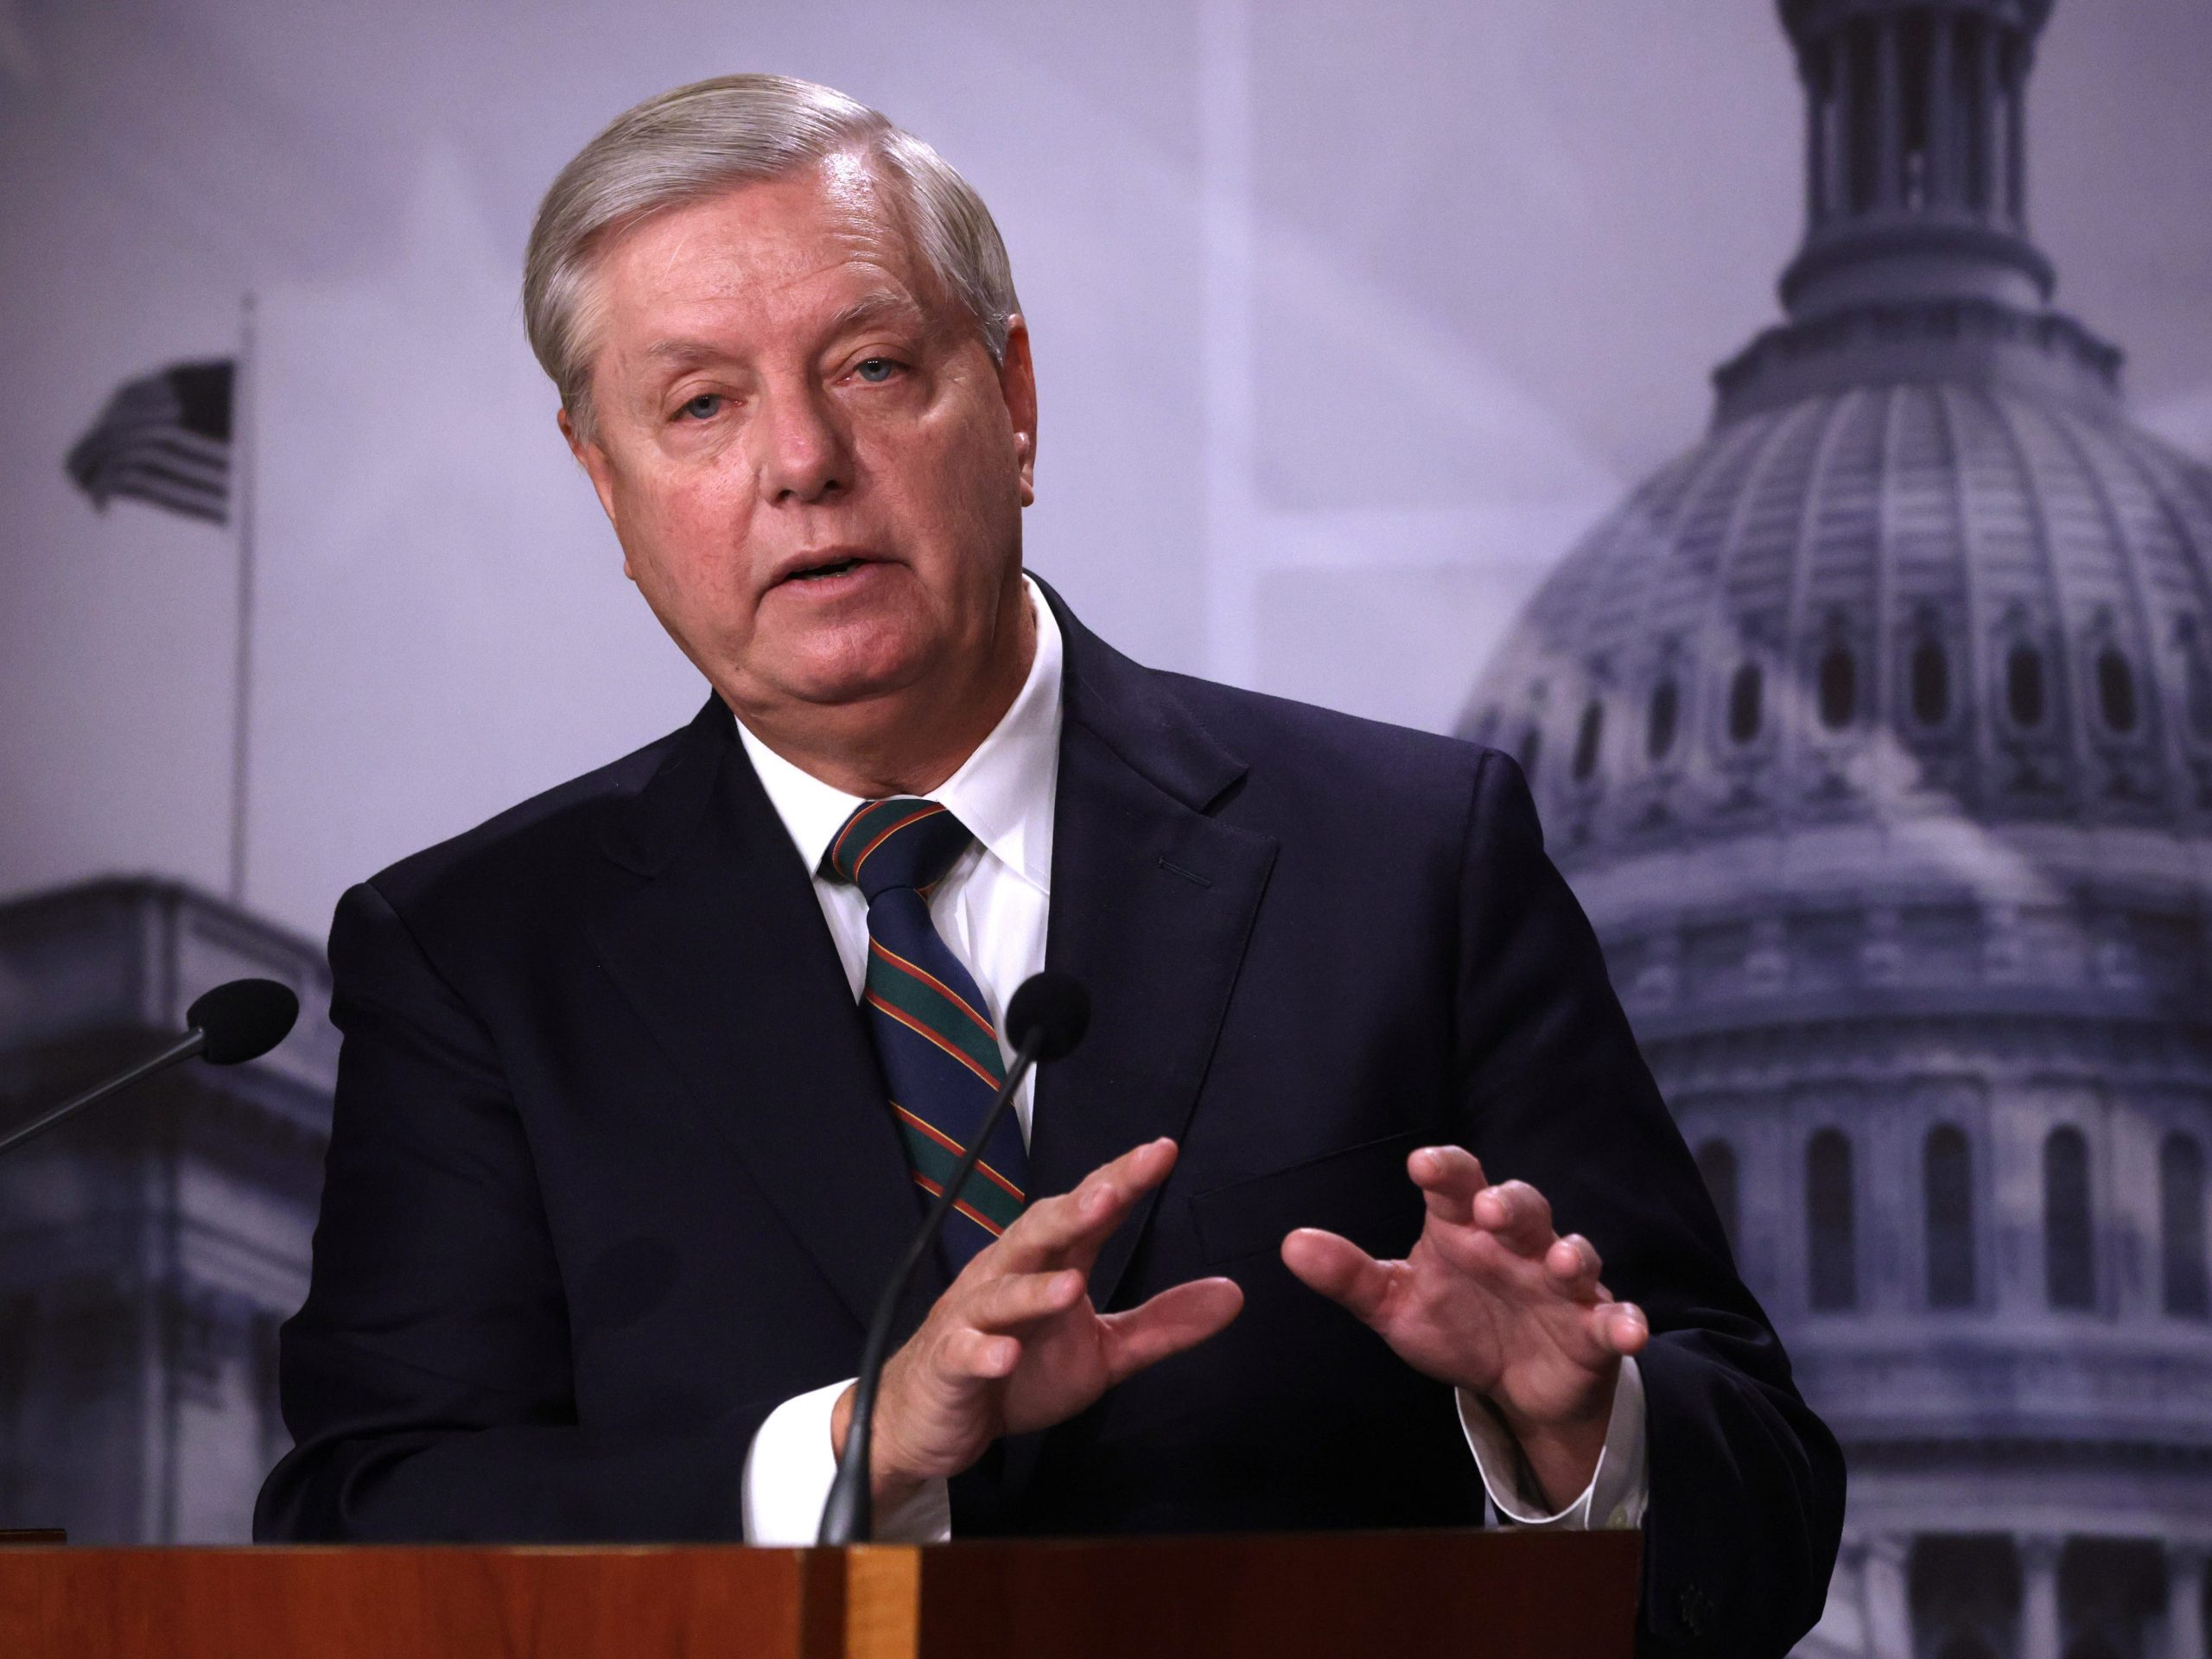 Sen. Lindsey Graham says Trump will 'secure his share of blame in history' for the Capitol riot